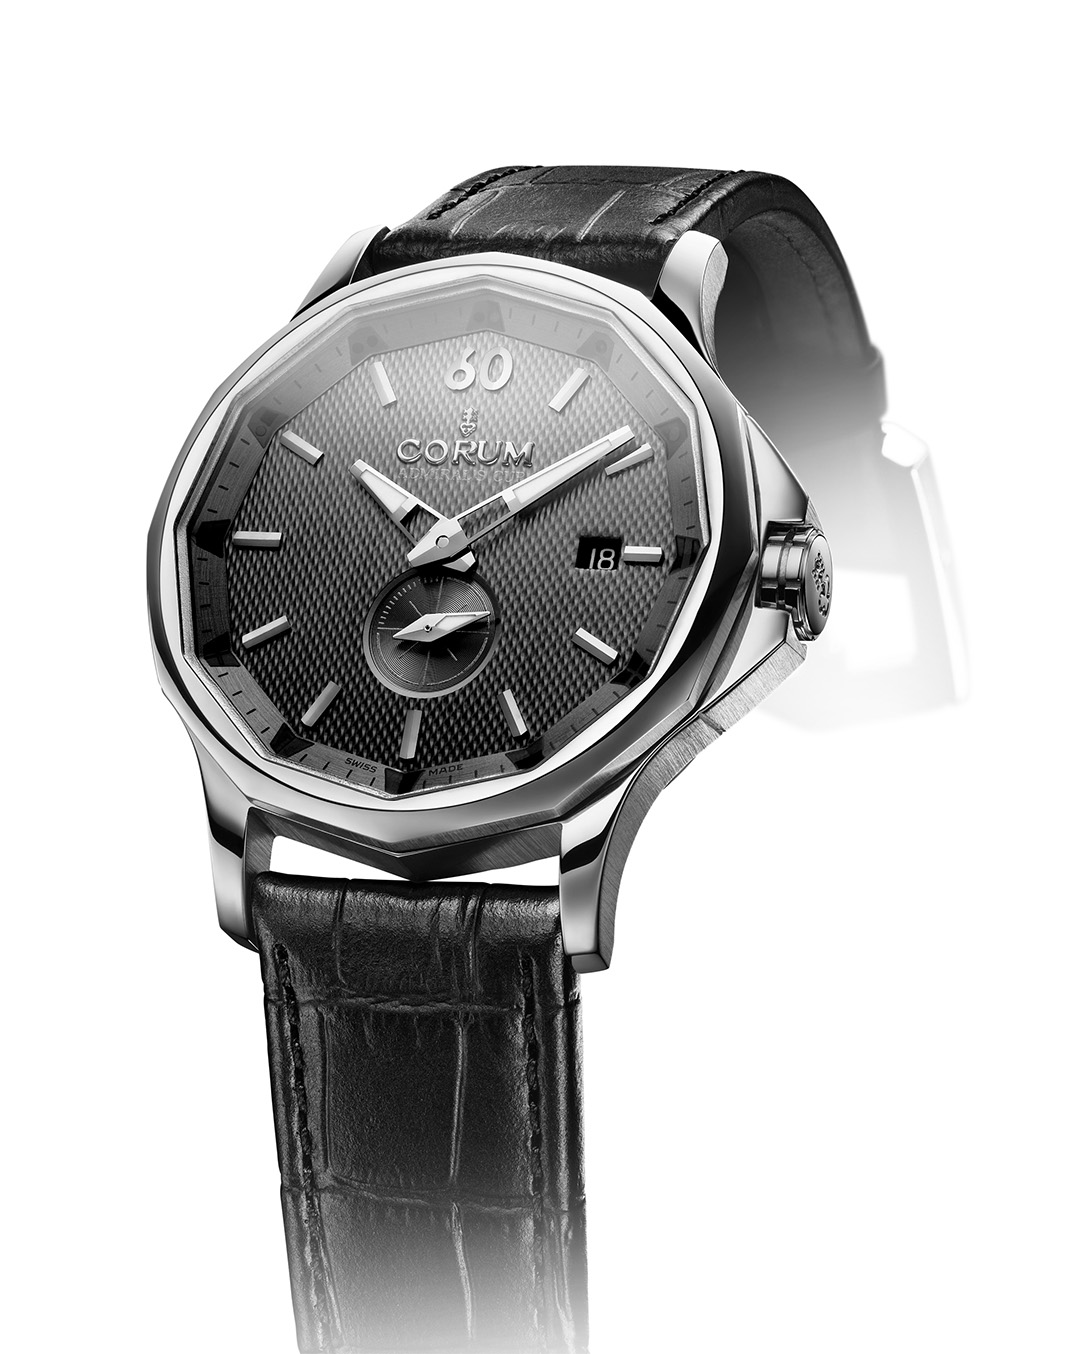 Admiral's Cup Legend steel with a black dial and leather strap